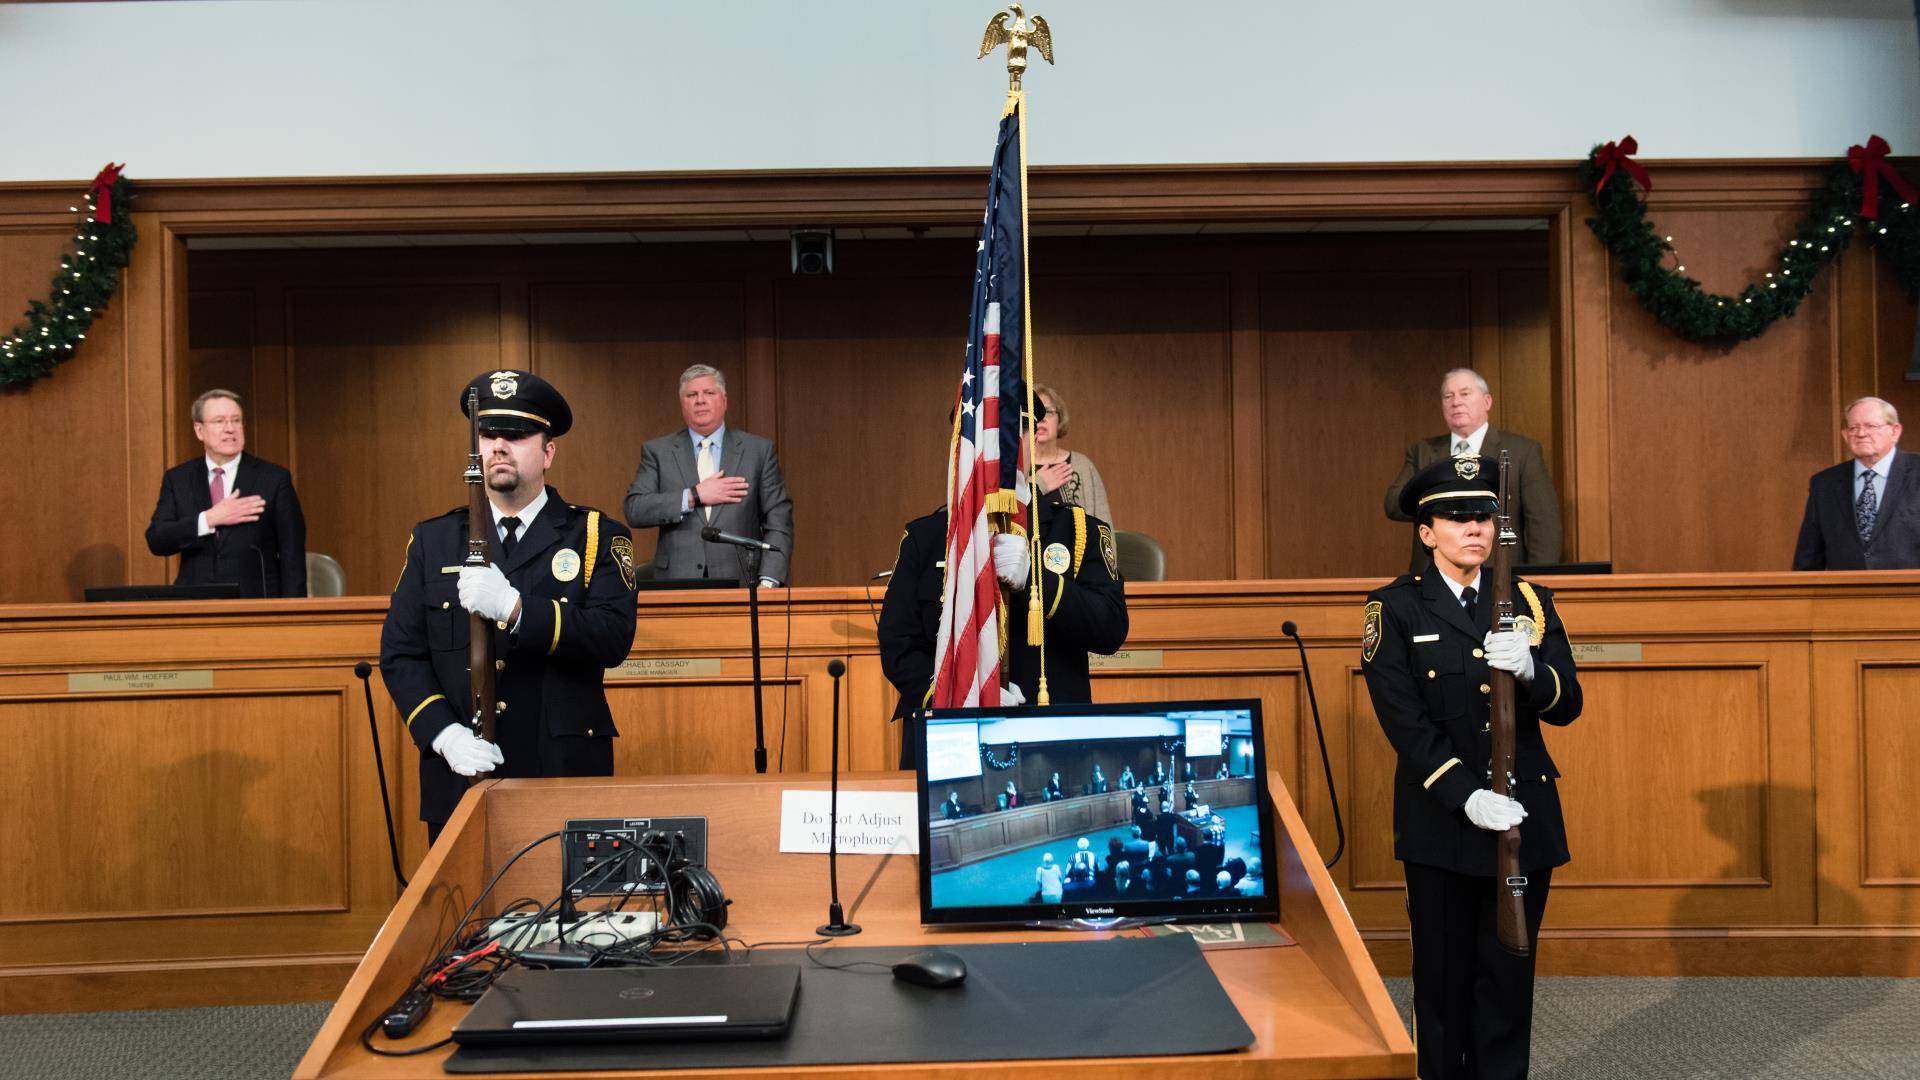 Chief Koziol Swearing-In Ceremony Final-4192